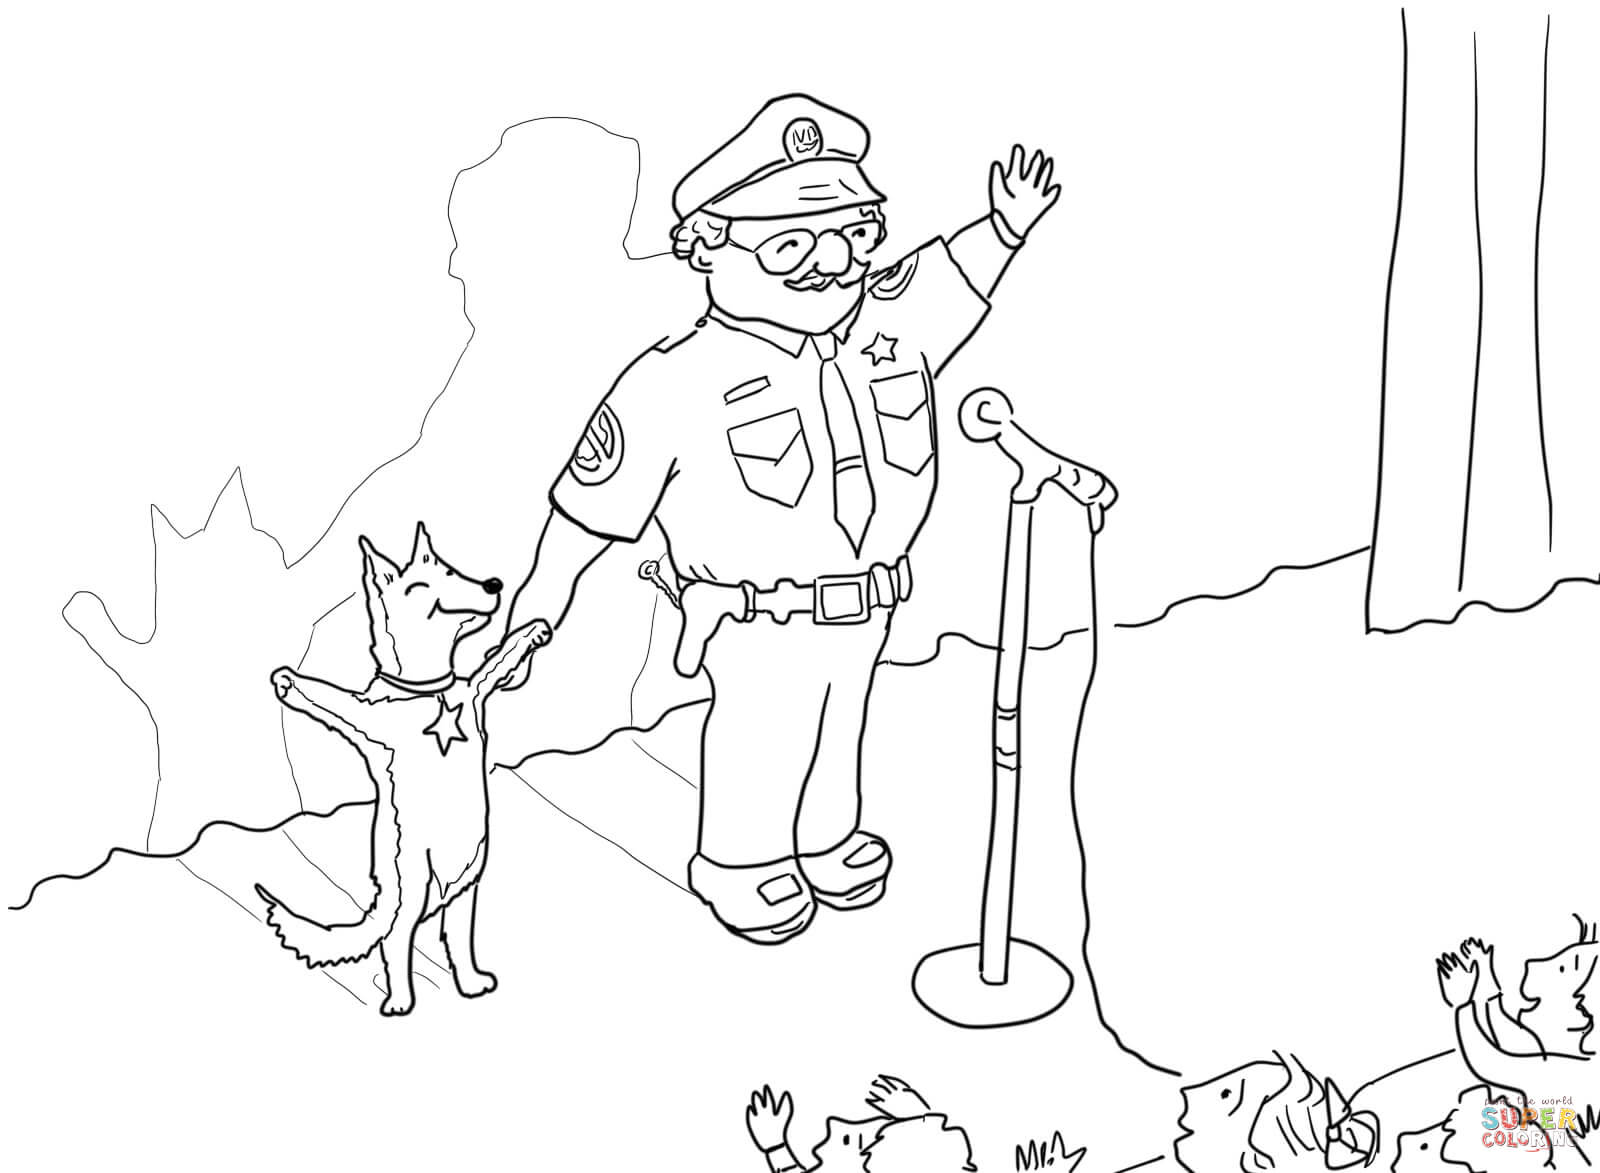 officer buckle and gloria clip art officer buckle and gloria with paper work coloring page gloria clip art buckle and officer